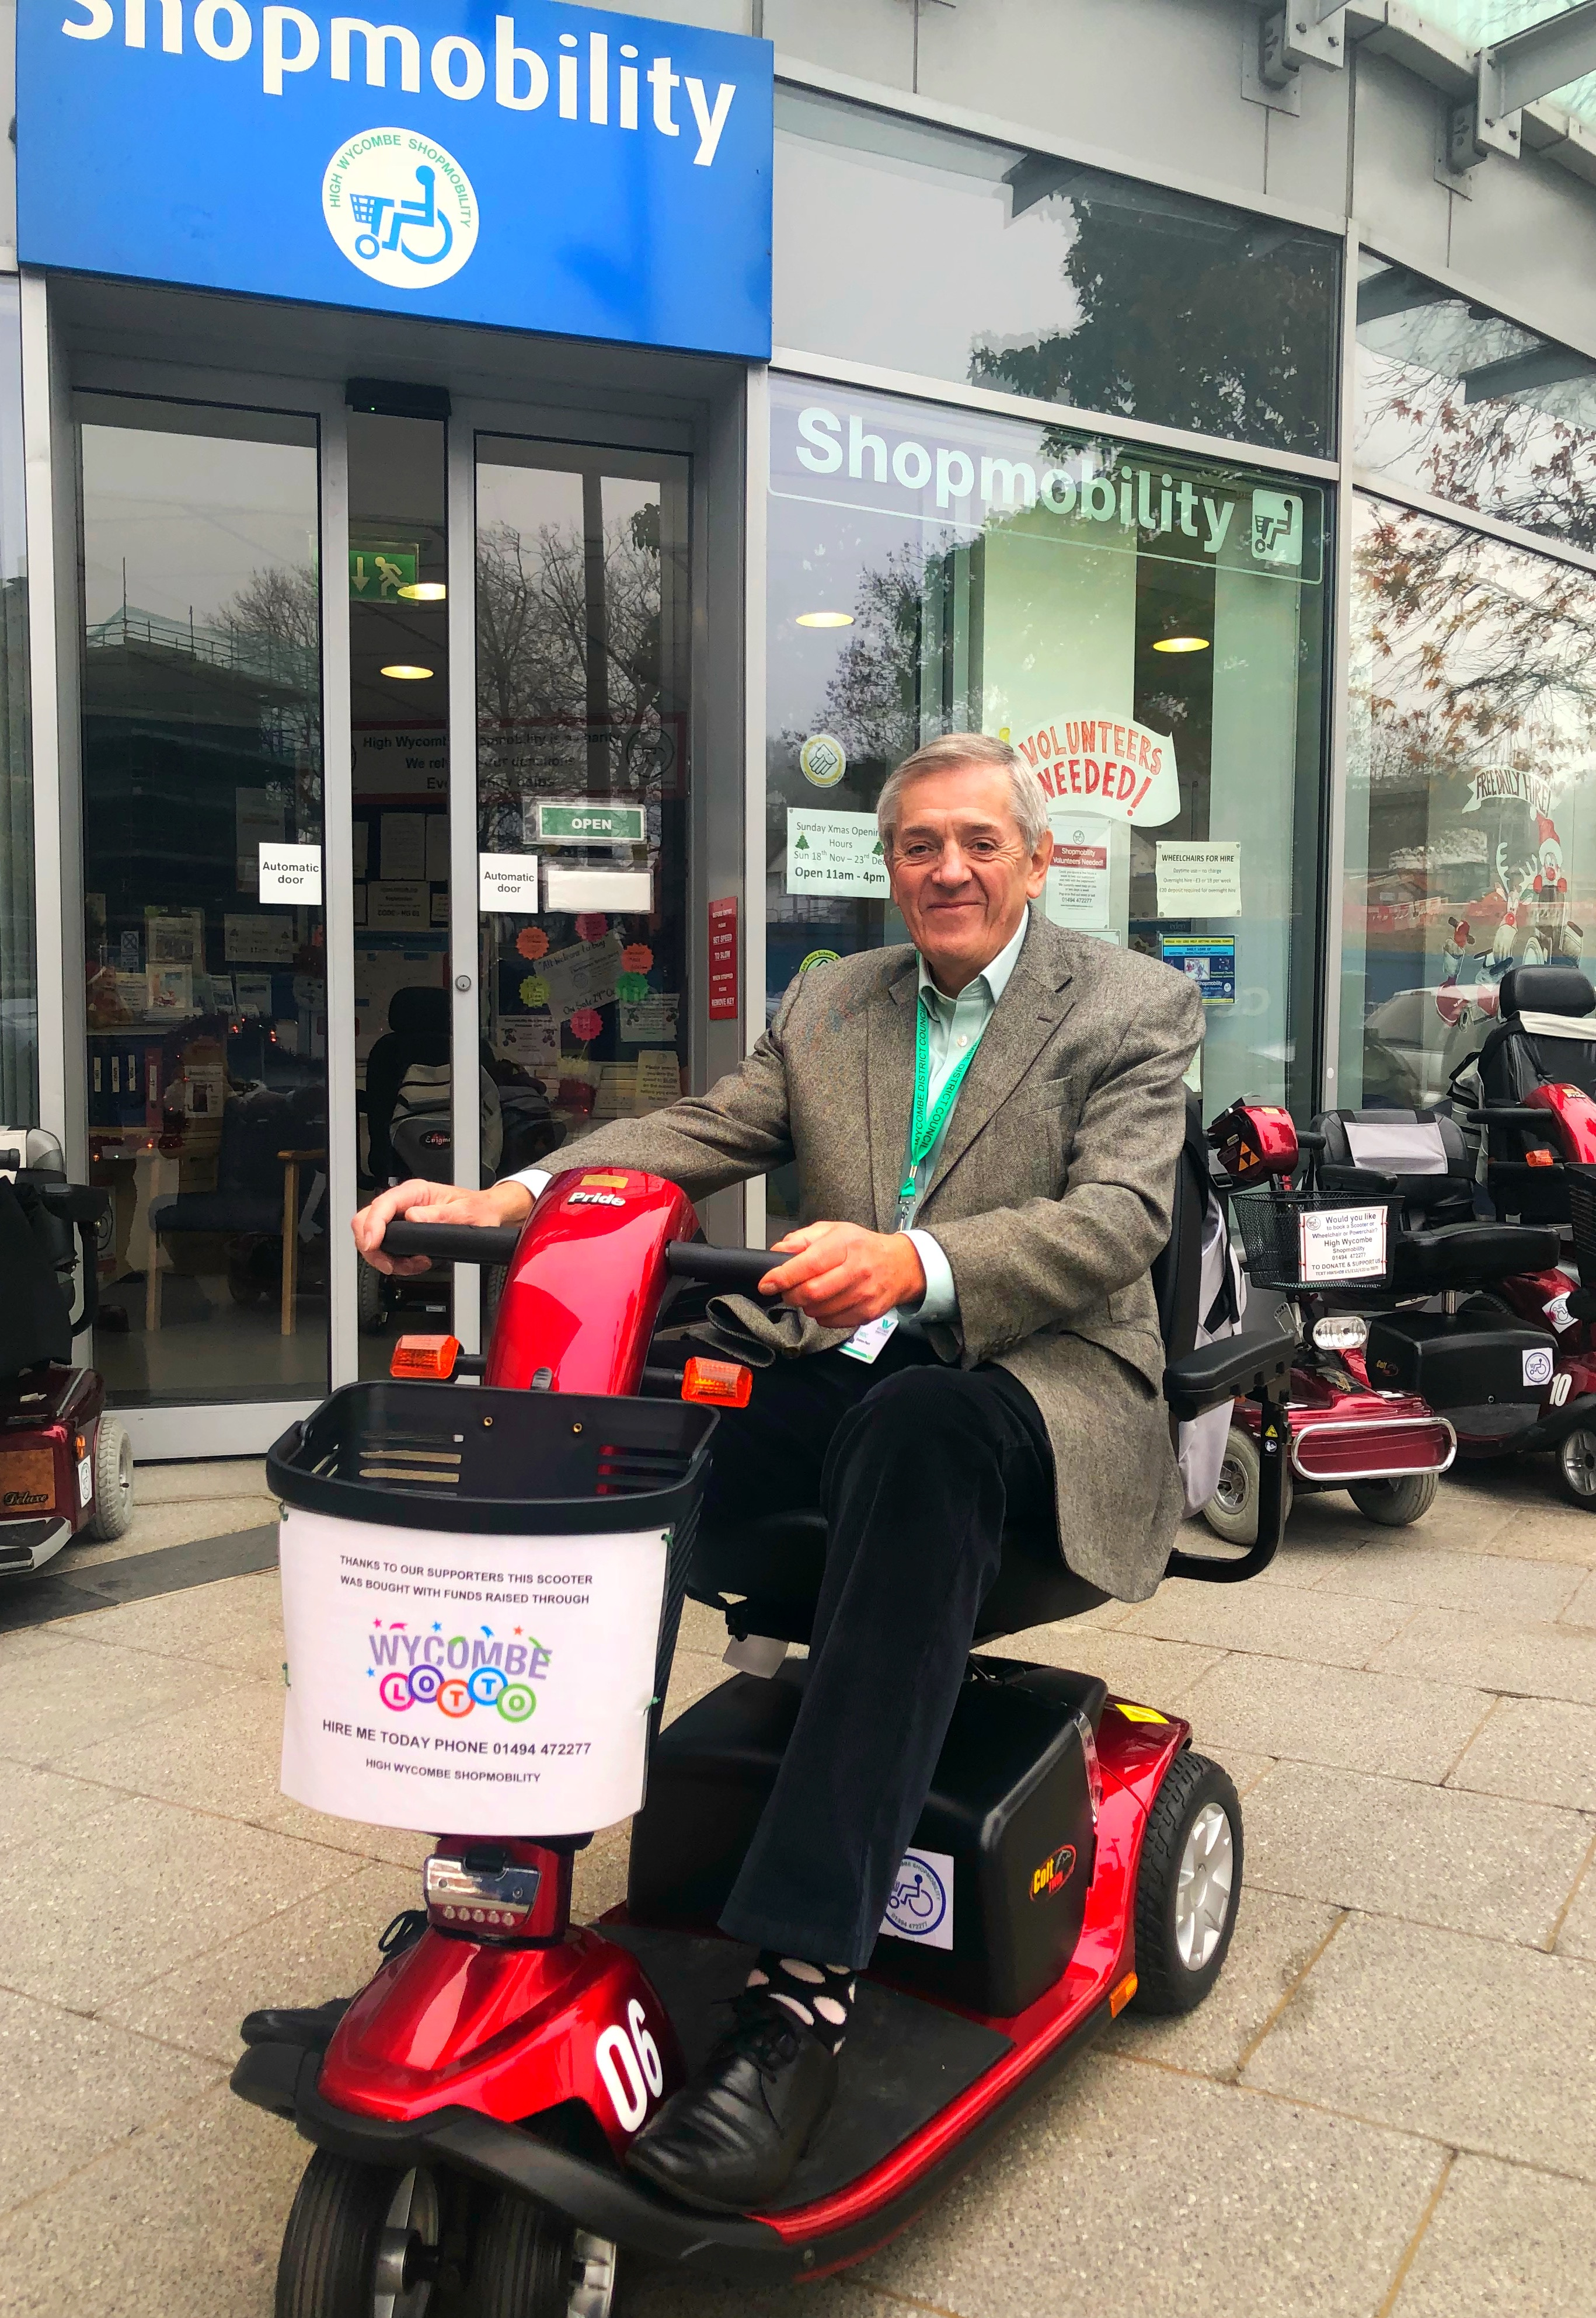 Wycombe Lotto Shopmobility Cllr Peart